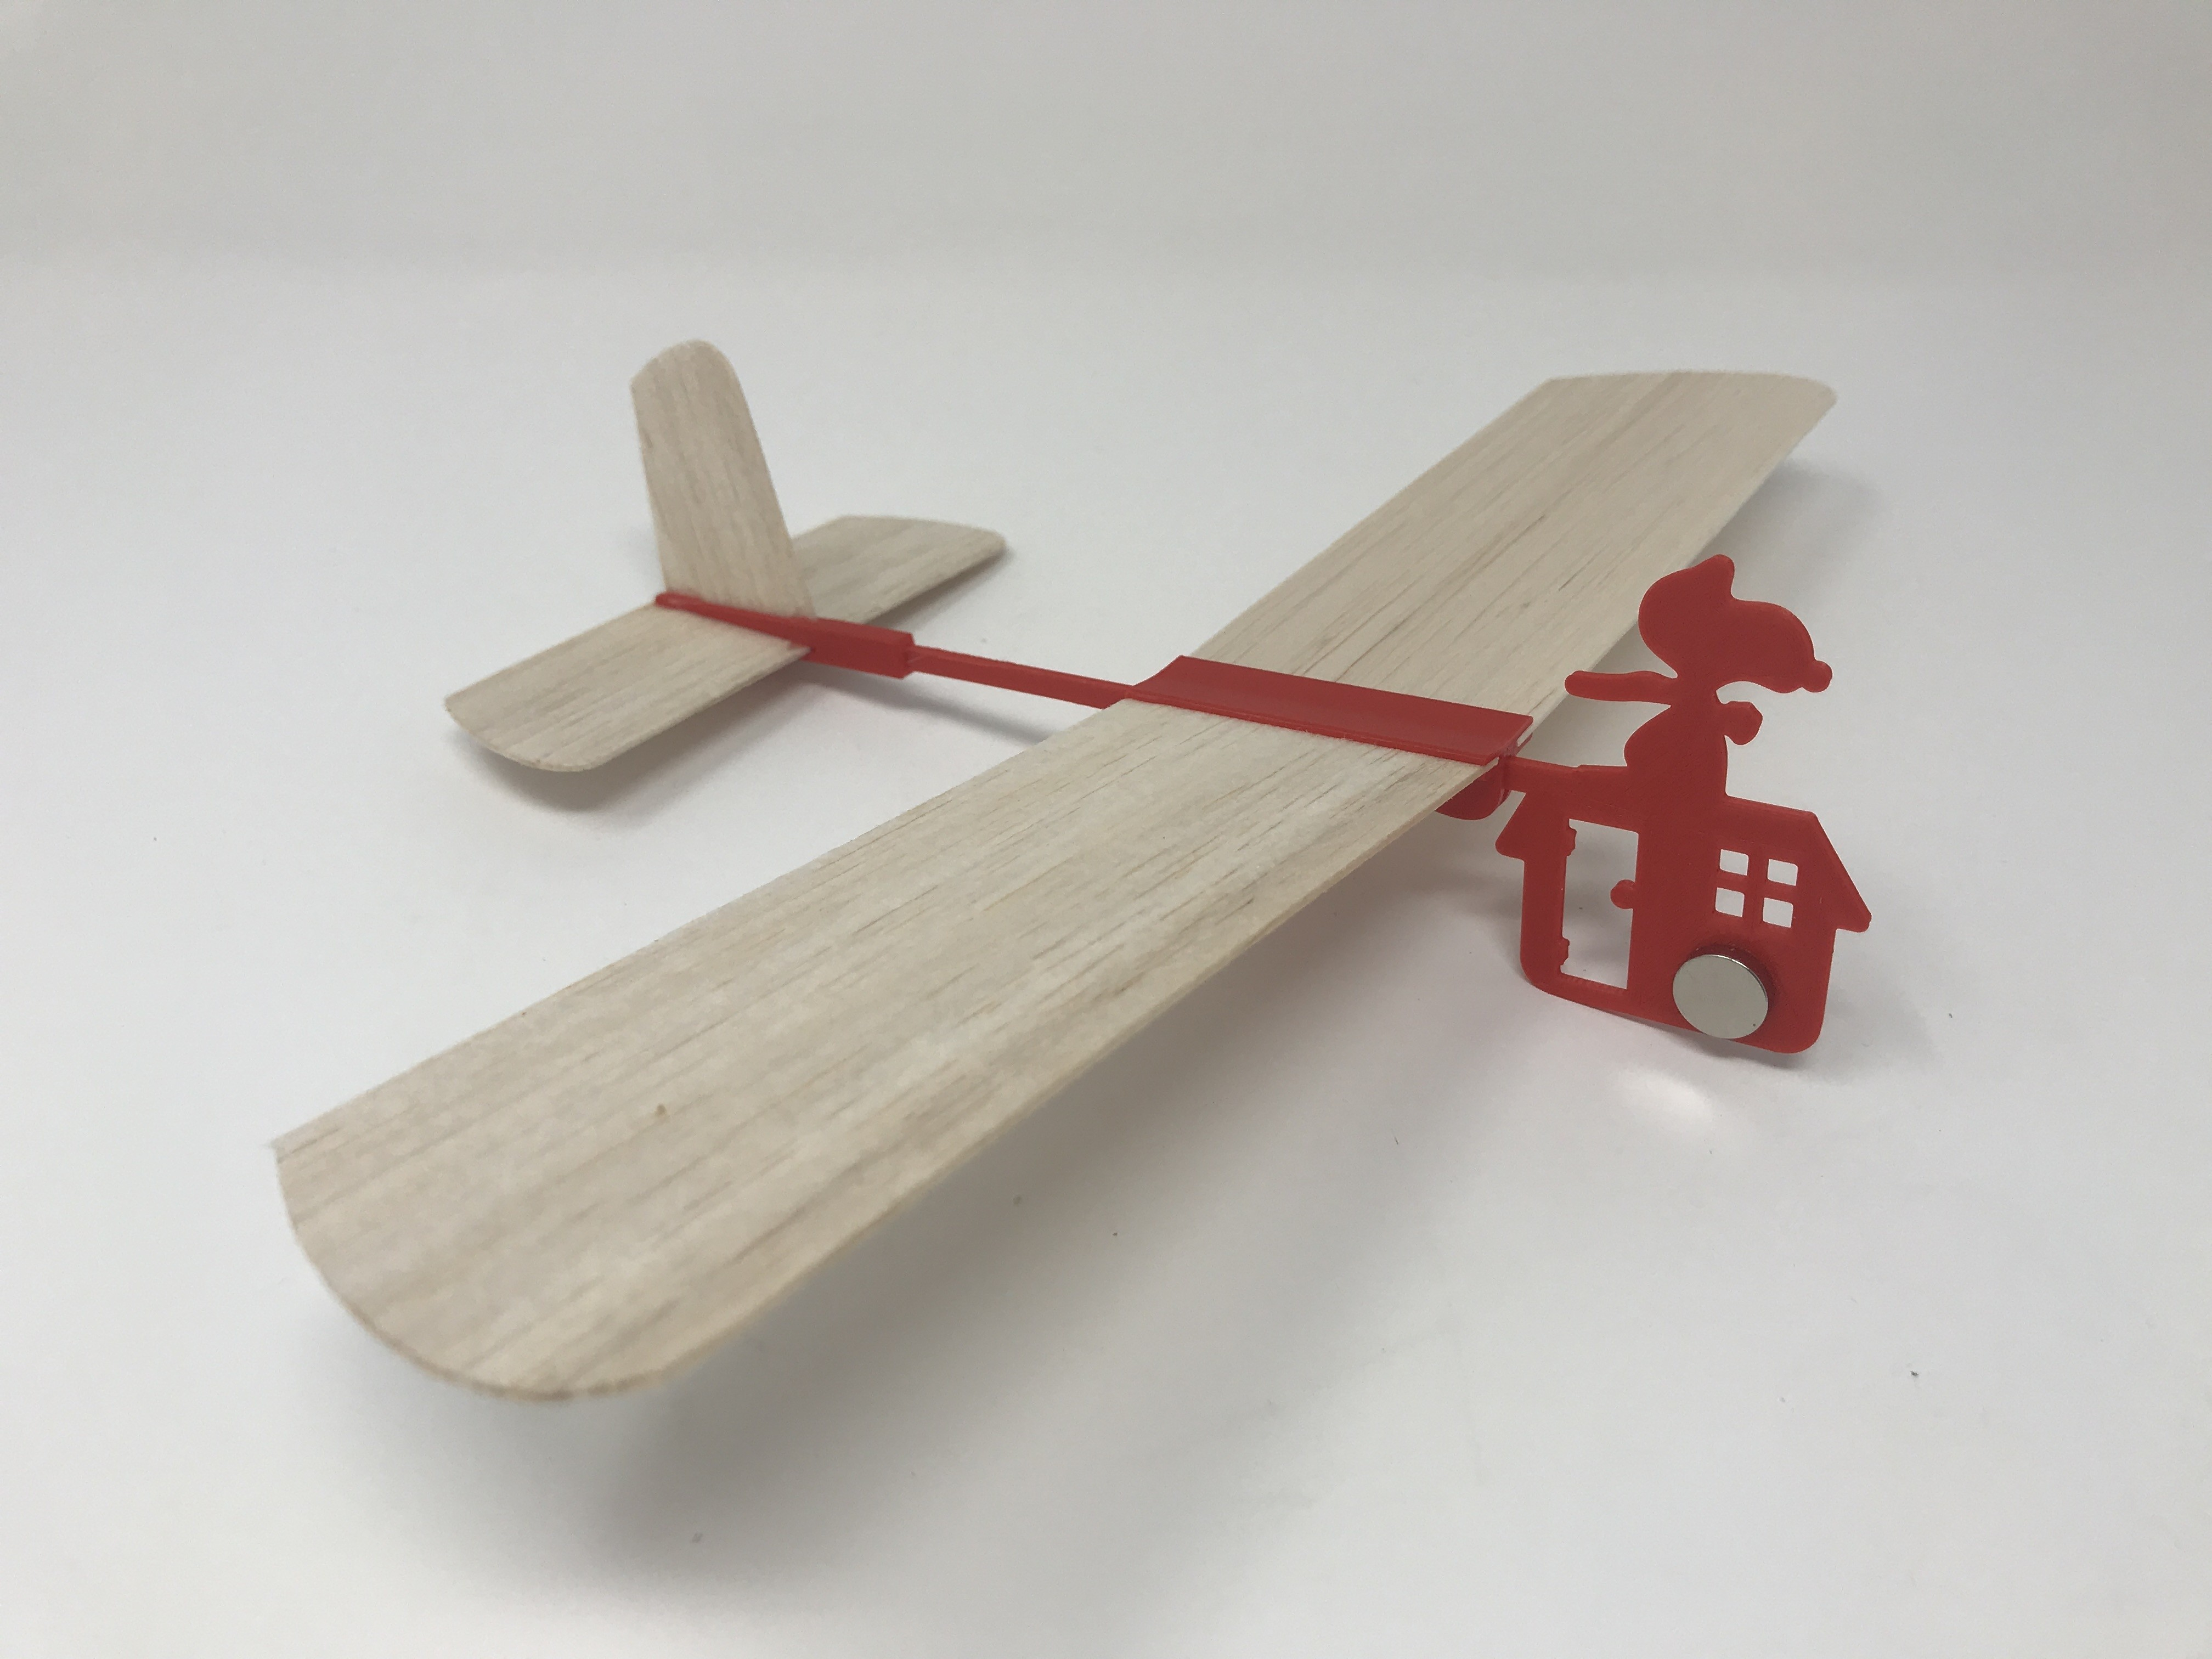 IMG_1755.jpg Download free STL file Red Baron Hand Launched Glider • 3D printer template, gzumwalt